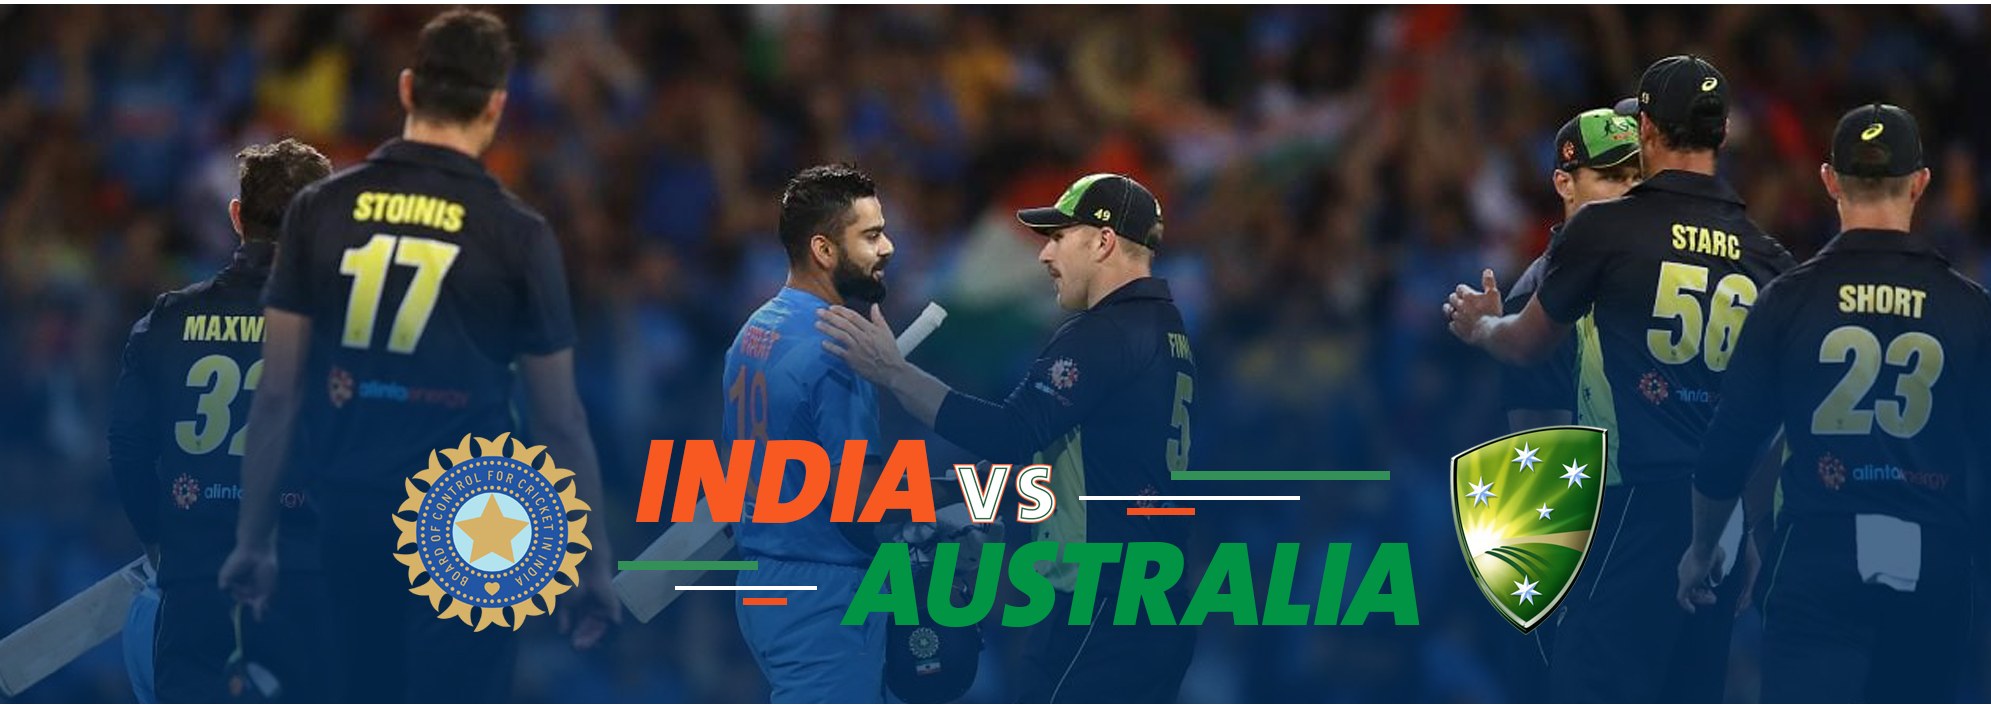 Australia Tour of India 2019 Tickets Prices and How to Book